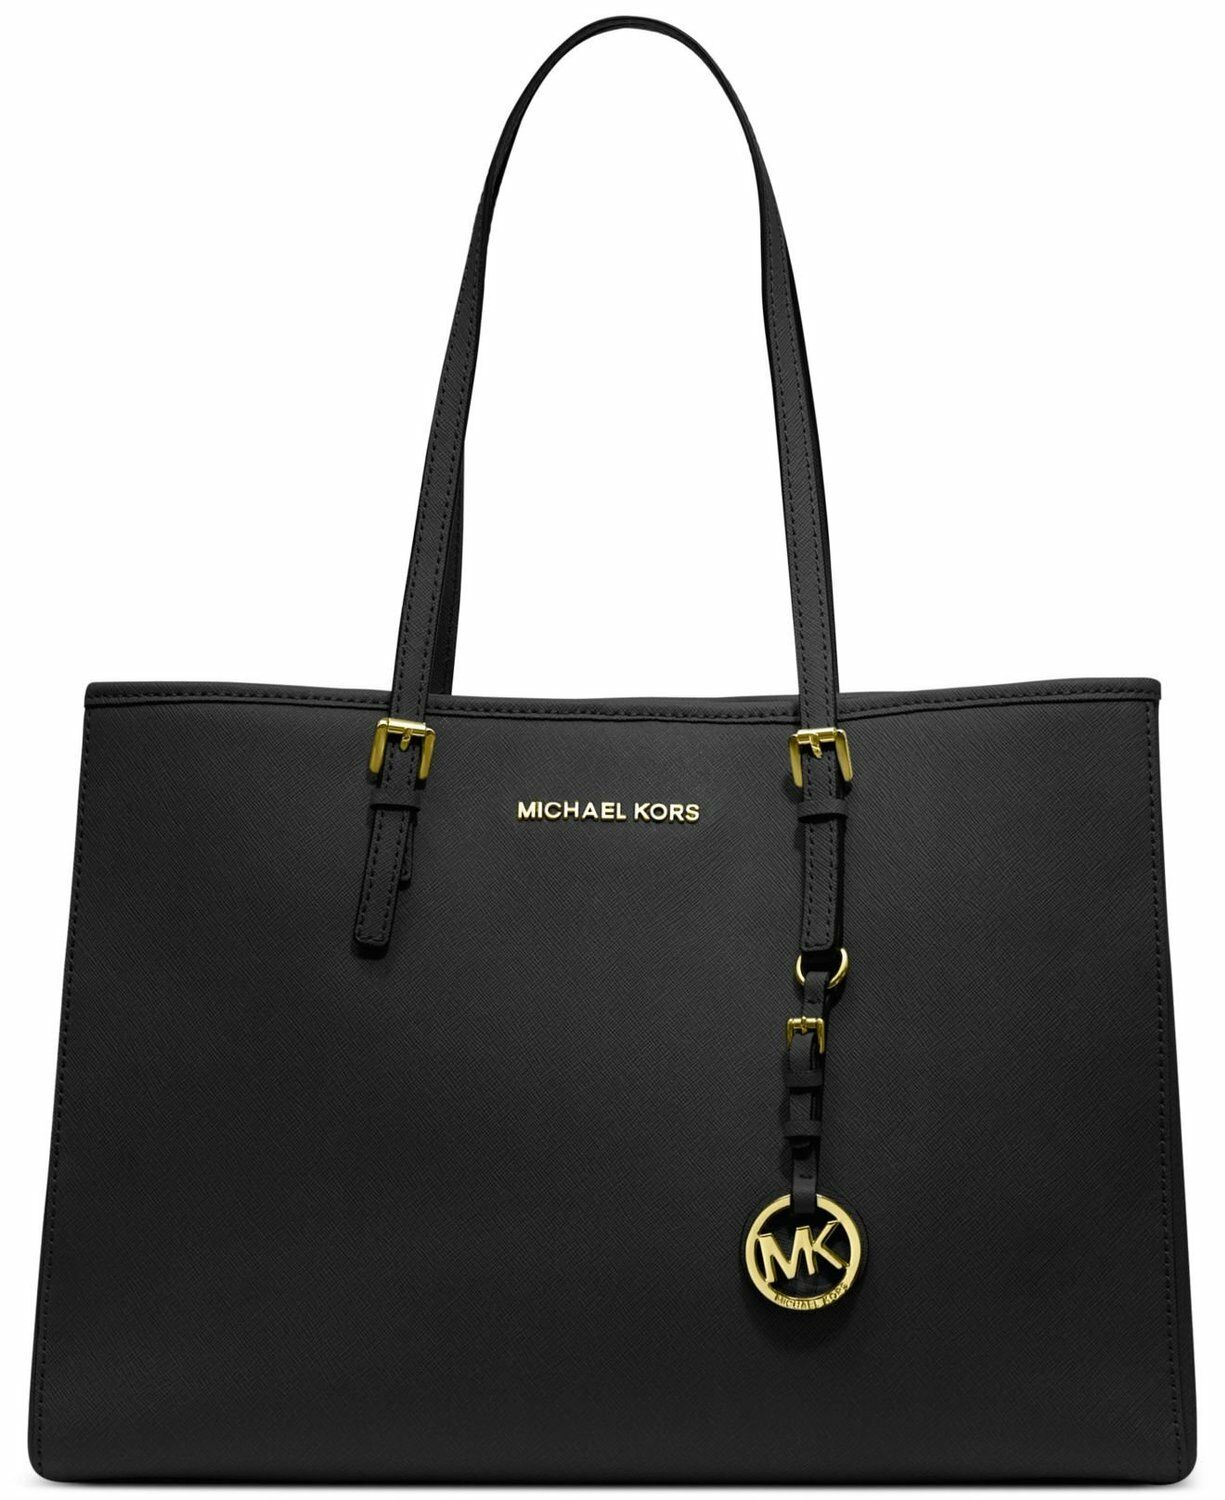 bc02210c77cc ... wholesale upc 887042722523 product image for michael kors jet travel  saffiano leather tote black upcitemdb. ...